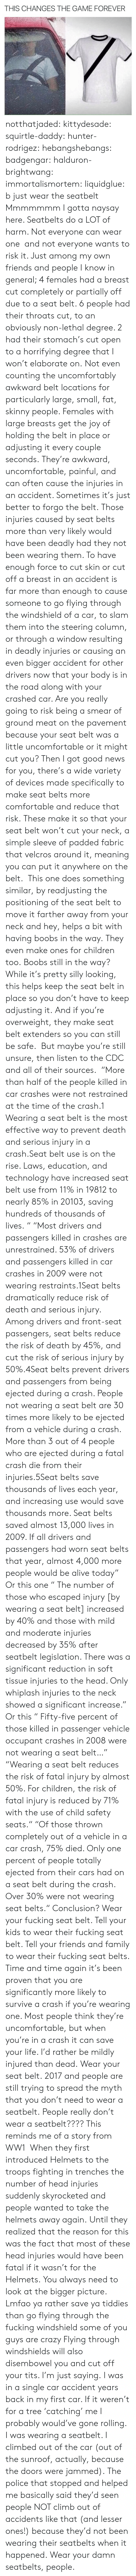 "cdc: THIS CHANGES THE GAME FOREVER notthatjaded: kittydesade:  squirtle-daddy:  hunter-rodrigez:  hebangshebangs:  badgengar:  halduron-brightwang:  immortalismortem:  liquidglue:   b just wear the seatbelt   Mmmmmmm I gotta naysay here. Seatbelts do a LOT of harm. Not everyone can wear one  and not everyone wants to risk it. Just among my own friends and people I know in general; 4 females had a breast cut completely or partially off due to a seat belt. 6 people had their throats cut, to an obviously non-lethal degree. 2 had their stomach's cut open to a horrifying degree that I won't elaborate on. Not even counting the uncomfortably awkward belt locations for particularly large, small, fat, skinny people. Females with large breasts get the joy of holding the belt in place or adjusting it every couple seconds. They're awkward, uncomfortable, painful, and can often cause the injuries in an accident. Sometimes it's just better to forgo the belt.  Those injuries caused by seat belts more than very likely would have been deadly had they not been wearing them. To have enough force to cut skin or cut off a breast in an accident is far more than enough to cause someone to go flying through the windshield of a car, to slam them into the steering column, or through a window resulting in deadly injuries or causing an even bigger accident for other drivers now that your body is in the road along with your crashed car. Are you really going to risk being a smear of ground meat on the pavement because your seat belt was a little uncomfortable or it might cut you? Then I got good news for you, there's a wide variety of devices made specifically to make seat belts more comfortable and reduce that risk. These make it so that your seat belt won't cut your neck, a simple sleeve of padded fabric that velcros around it, meaning you can put it anywhere on the belt.  This one does something similar, by readjusting the positioning of the seat belt to move it farther away from your neck and hey, helps a bit with having boobs in the way. They even make ones for children too. Boobs still in the way? While it's pretty silly looking, this helps keep the seat belt in place so you don't have to keep adjusting it. And if you're overweight, they make seat belt extenders so you can still be safe.  But maybe you're still unsure, then listen to the CDC and all of their sources.  ""More than half of the people killed in car crashes were not restrained at the time of the crash.1 Wearing a seat belt is the most effective way to prevent death and serious injury in a crash.Seat belt use is on the rise. Laws, education, and technology have increased seat belt use from 11% in 19812 to nearly 85% in 20103, saving hundreds of thousands of lives. "" ""Most drivers and passengers killed in crashes are unrestrained. 53% of drivers and passengers killed in car crashes in 2009 were not wearing restraints.1Seat belts dramatically reduce risk of death and serious injury. Among drivers and front-seat passengers, seat belts reduce the risk of death by 45%, and cut the risk of serious injury by 50%.4Seat belts prevent drivers and passengers from being ejected during a crash. People not wearing a seat belt are 30 times more likely to be ejected from a vehicle during a crash. More than 3 out of 4 people who are ejected during a fatal crash die from their injuries.5Seat belts save thousands of lives each year, and increasing use would save thousands more. Seat belts saved almost 13,000 lives in 2009. If all drivers and passengers had worn seat belts that year, almost 4,000 more people would be alive today"" Or this one ""   The number of those who escaped injury [by wearing a seat belt] increased by 40% and those with mild and moderate injuries decreased by 35% after seatbelt legislation. There was a significant reduction in soft tissue injuries to the head. Only whiplash injuries to the neck showed a significant increase."" Or this ""  Fifty-five percent of those killed in passenger vehicle occupant crashes in 2008 were not wearing a seat belt…"" ""Wearing a seat belt reduces the risk of fatal injury by almost 50%. For children, the risk of fatal injury is reduced by 71% with the use of child safety seats."" ""Of those thrown completely out of a vehicle in a car crash, 75% died. Only one percent of people totally ejected from their cars had on a seat belt during the crash. Over 30% were not wearing seat belts."" Conclusion? Wear your fucking seat belt. Tell your kids to wear their fucking seat belt. Tell your friends and family to wear their fucking seat belts. Time and time again it's been proven that you are significantly more likely to survive a crash if you're wearing one. Most people think they're uncomfortable, but when you're in a crash it can save your life. I'd rather be mildly injured than dead. Wear your seat belt.  2017 and people are still trying to spread the myth that you don't need to wear a seatbelt.   People really don't wear a seatbelt????  This reminds me of a story from WW1  When they first introduced Helmets to the troops fighting in trenches the number of head injuries suddenly skyrocketed and people wanted to take the helmets away again. Until they realized that the reason for this was the fact that most of these head injuries would have been fatal if it wasn't for the Helmets. You always need to look at the bigger picture.     Lmfao ya rather save ya tiddies than go flying through the fucking windshield some of you guys are crazy   Flying through windshields will also disembowel you and cut off your tits. I'm just saying.  I was in a single car accident years back in my first car. If it weren't for a tree 'catching' me I probably would've gone rolling. I was wearing a seatbelt. I climbed out of the car (out of the sunroof, actually, because the doors were jammed). The police that stopped and helped me basically said they'd seen people NOT climb out of accidents like that (and lesser ones!) because they'd not been wearing their seatbelts when it happened. Wear your damn seatbelts, people."